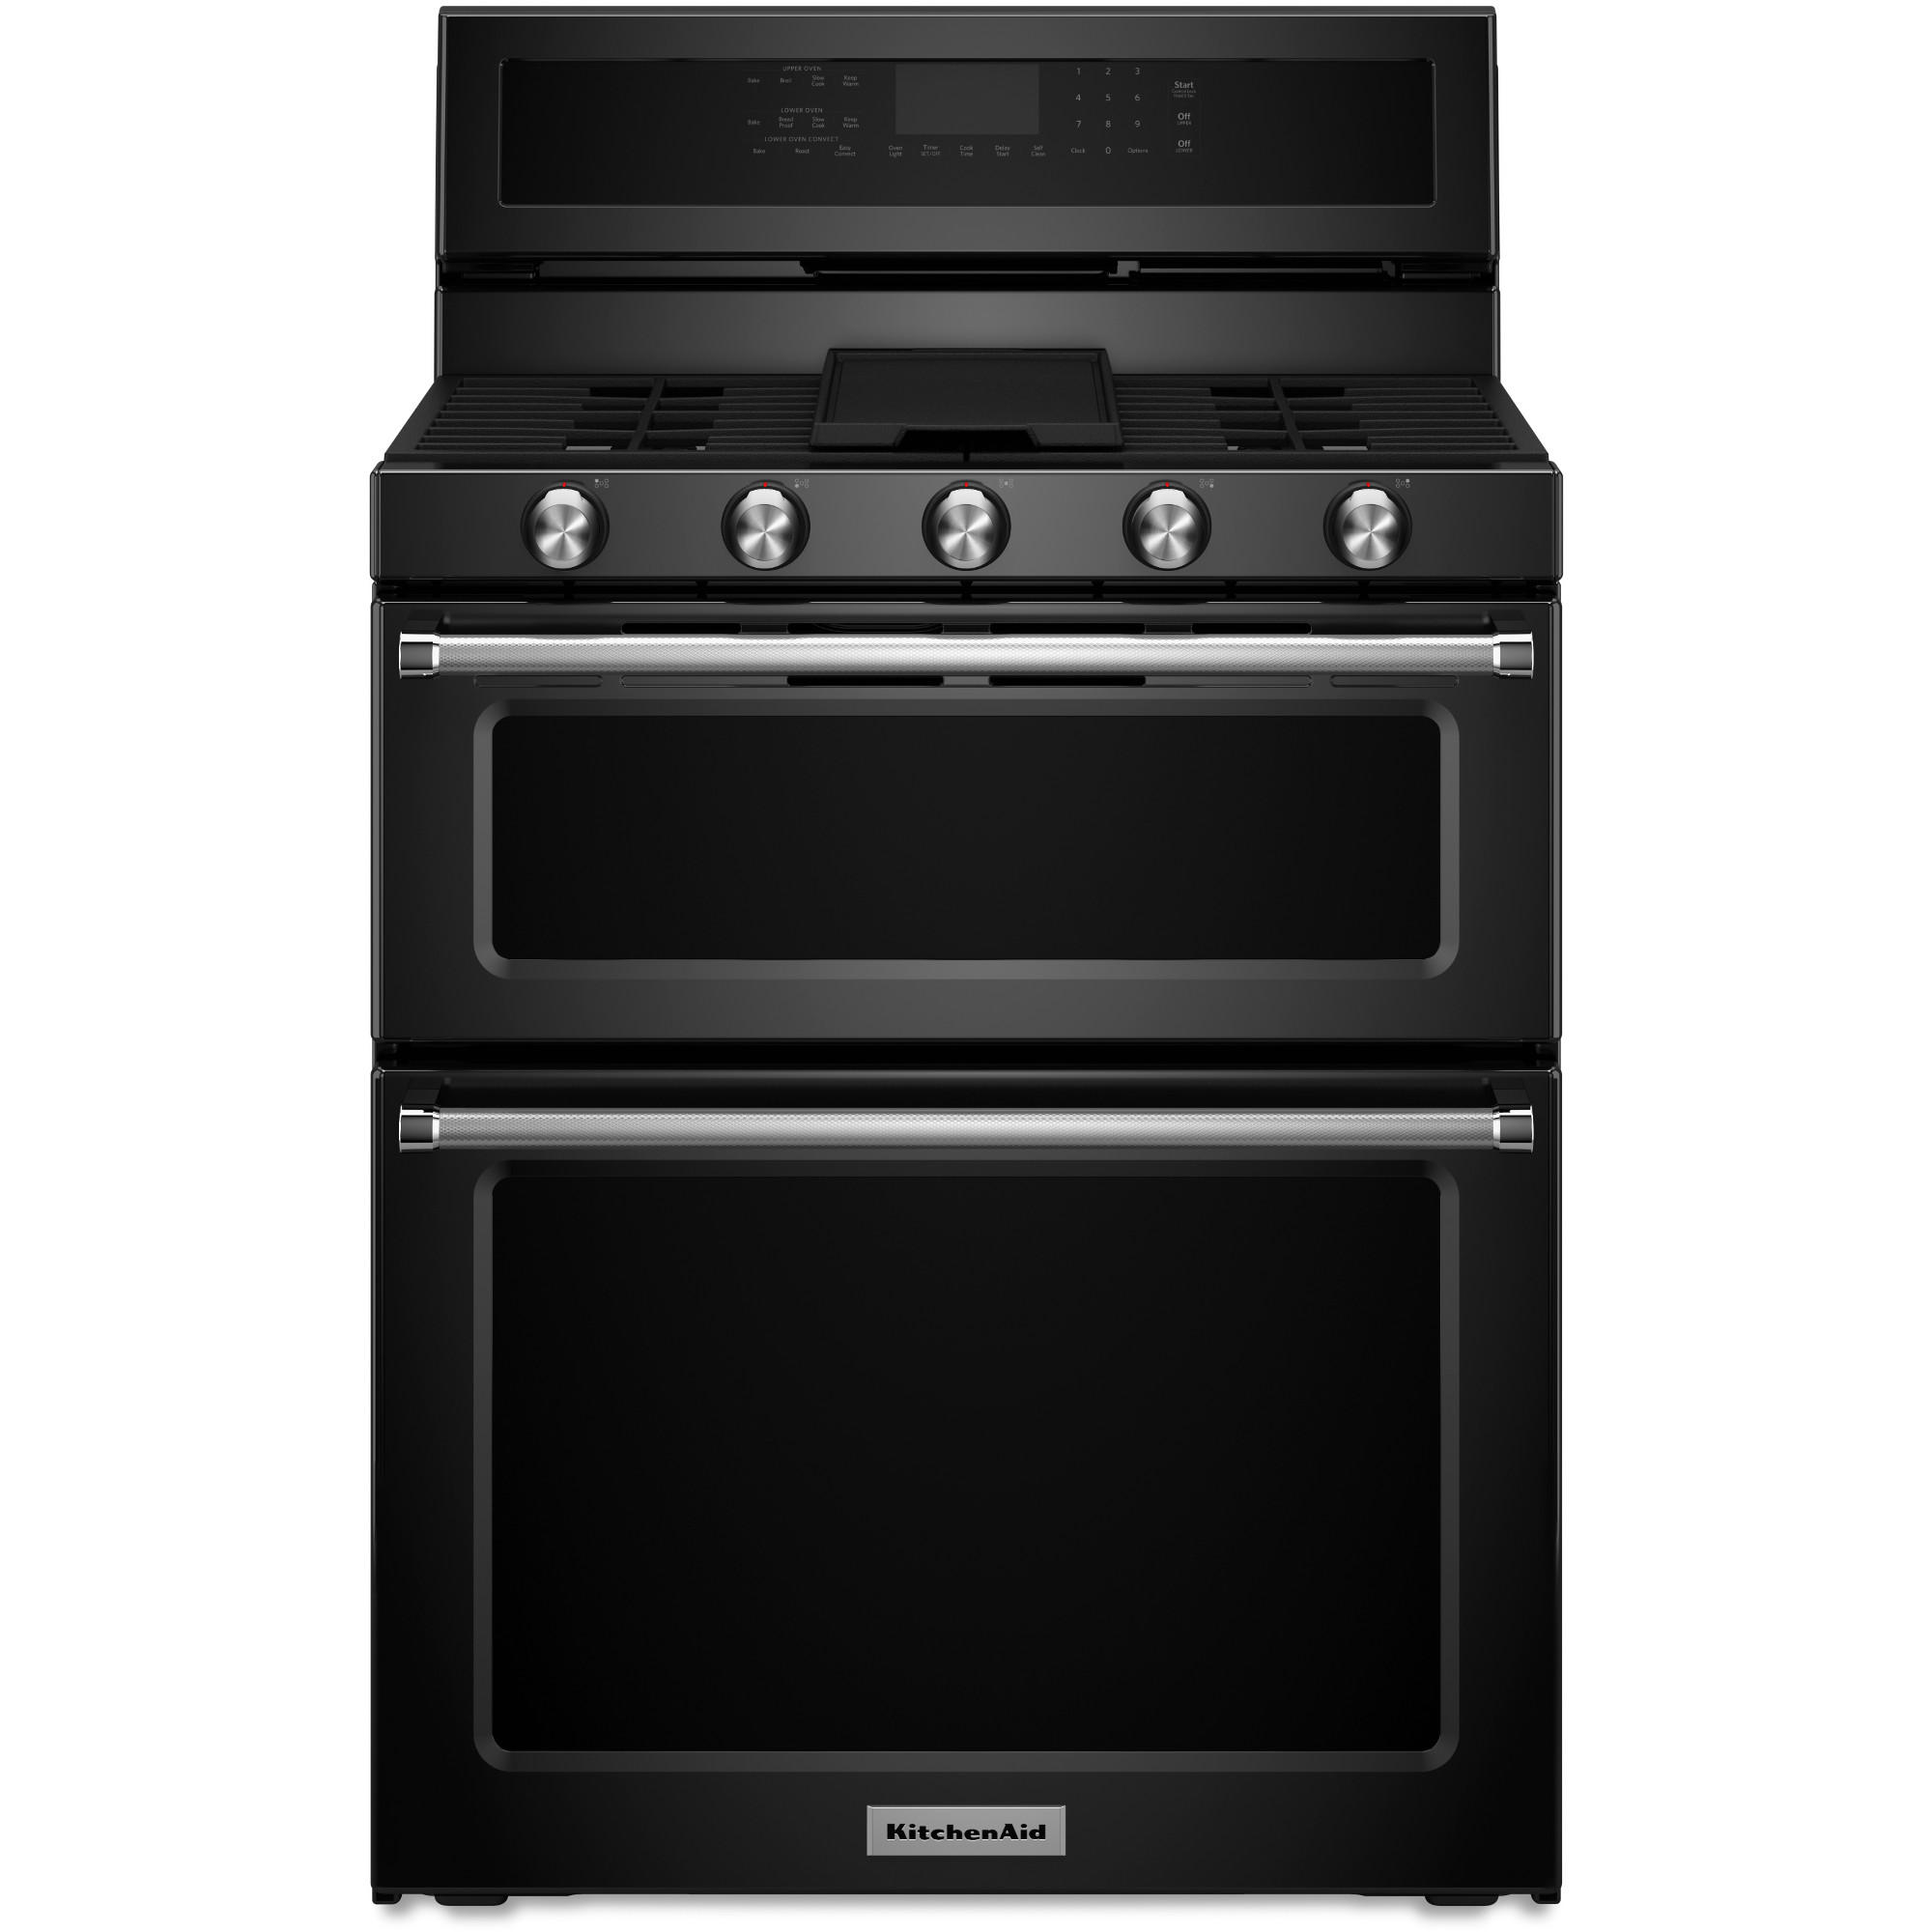 KitchenAid KFGD500EBL 6.0 cu. ft. 5-Burner Gas Double Oven Range - Black